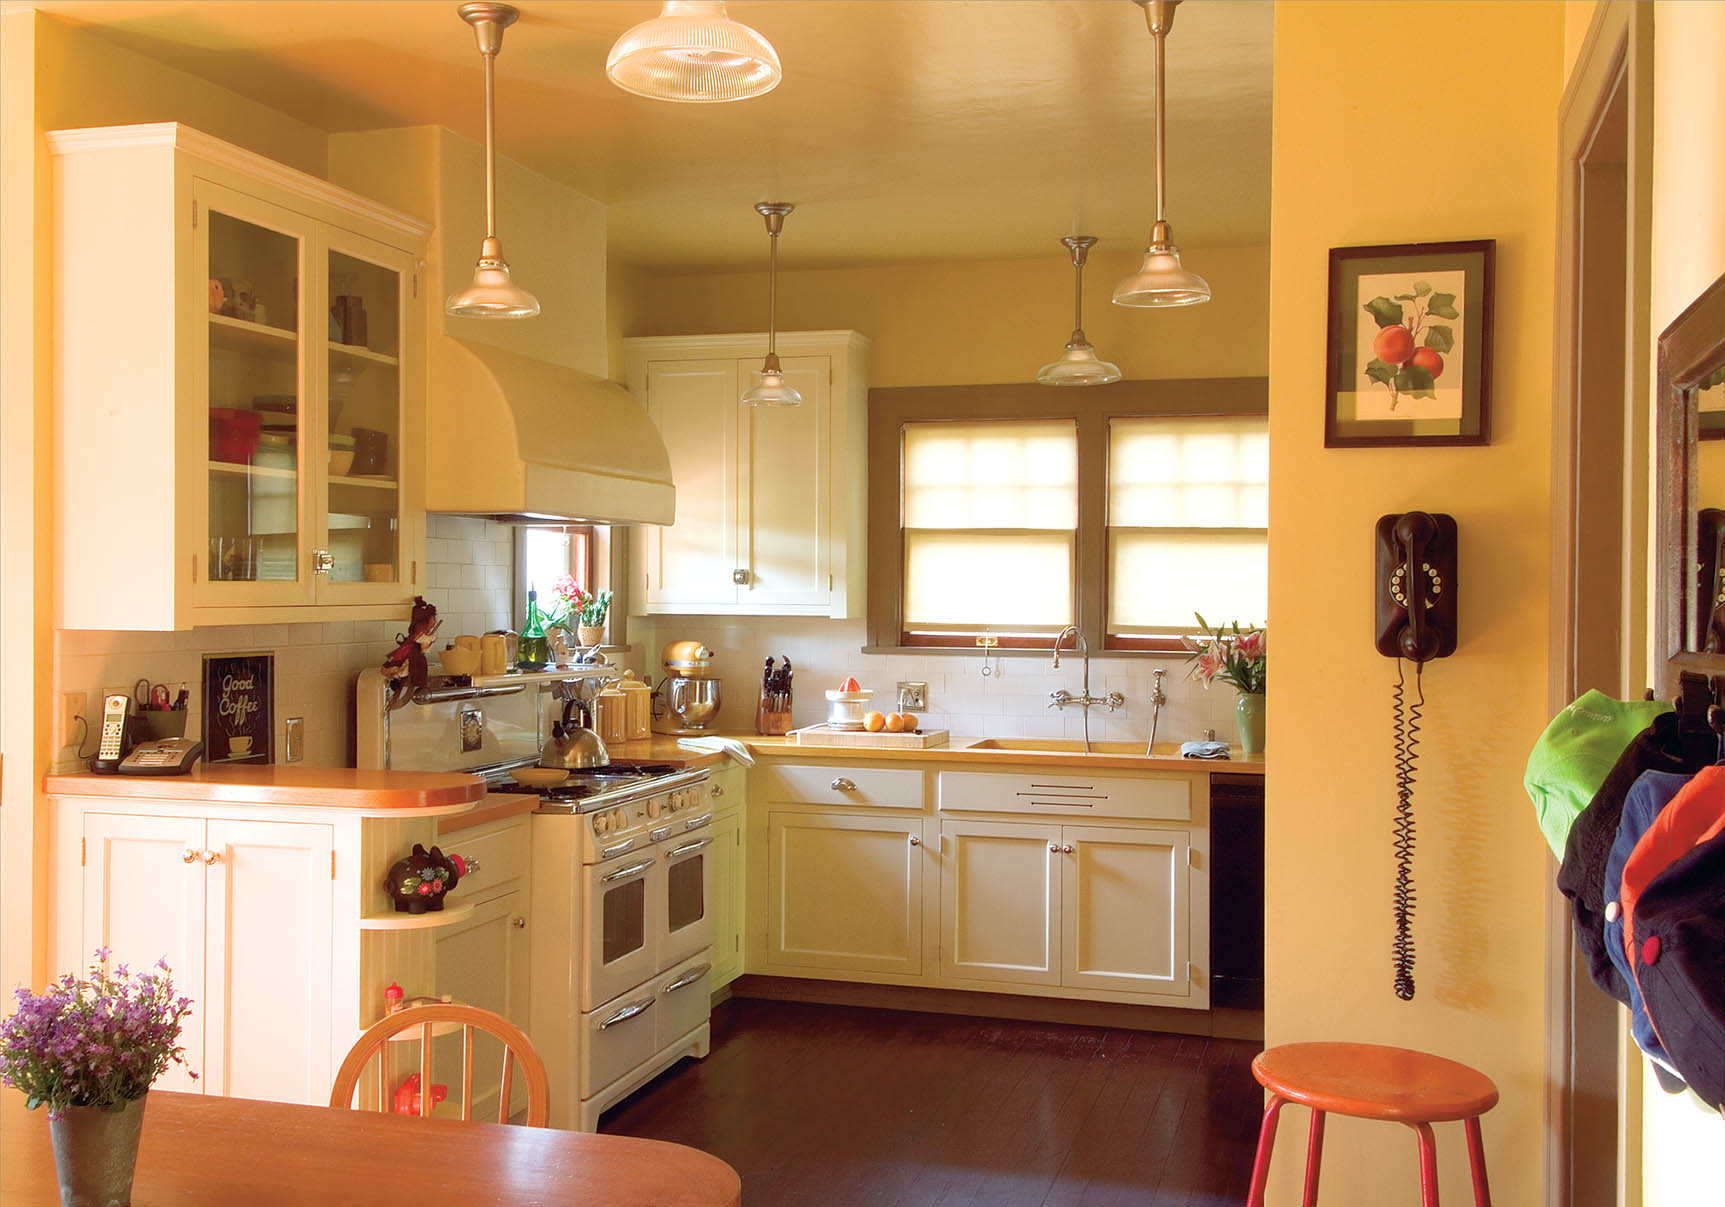 Bungalow Kitchens: Changing With The Times | American ...